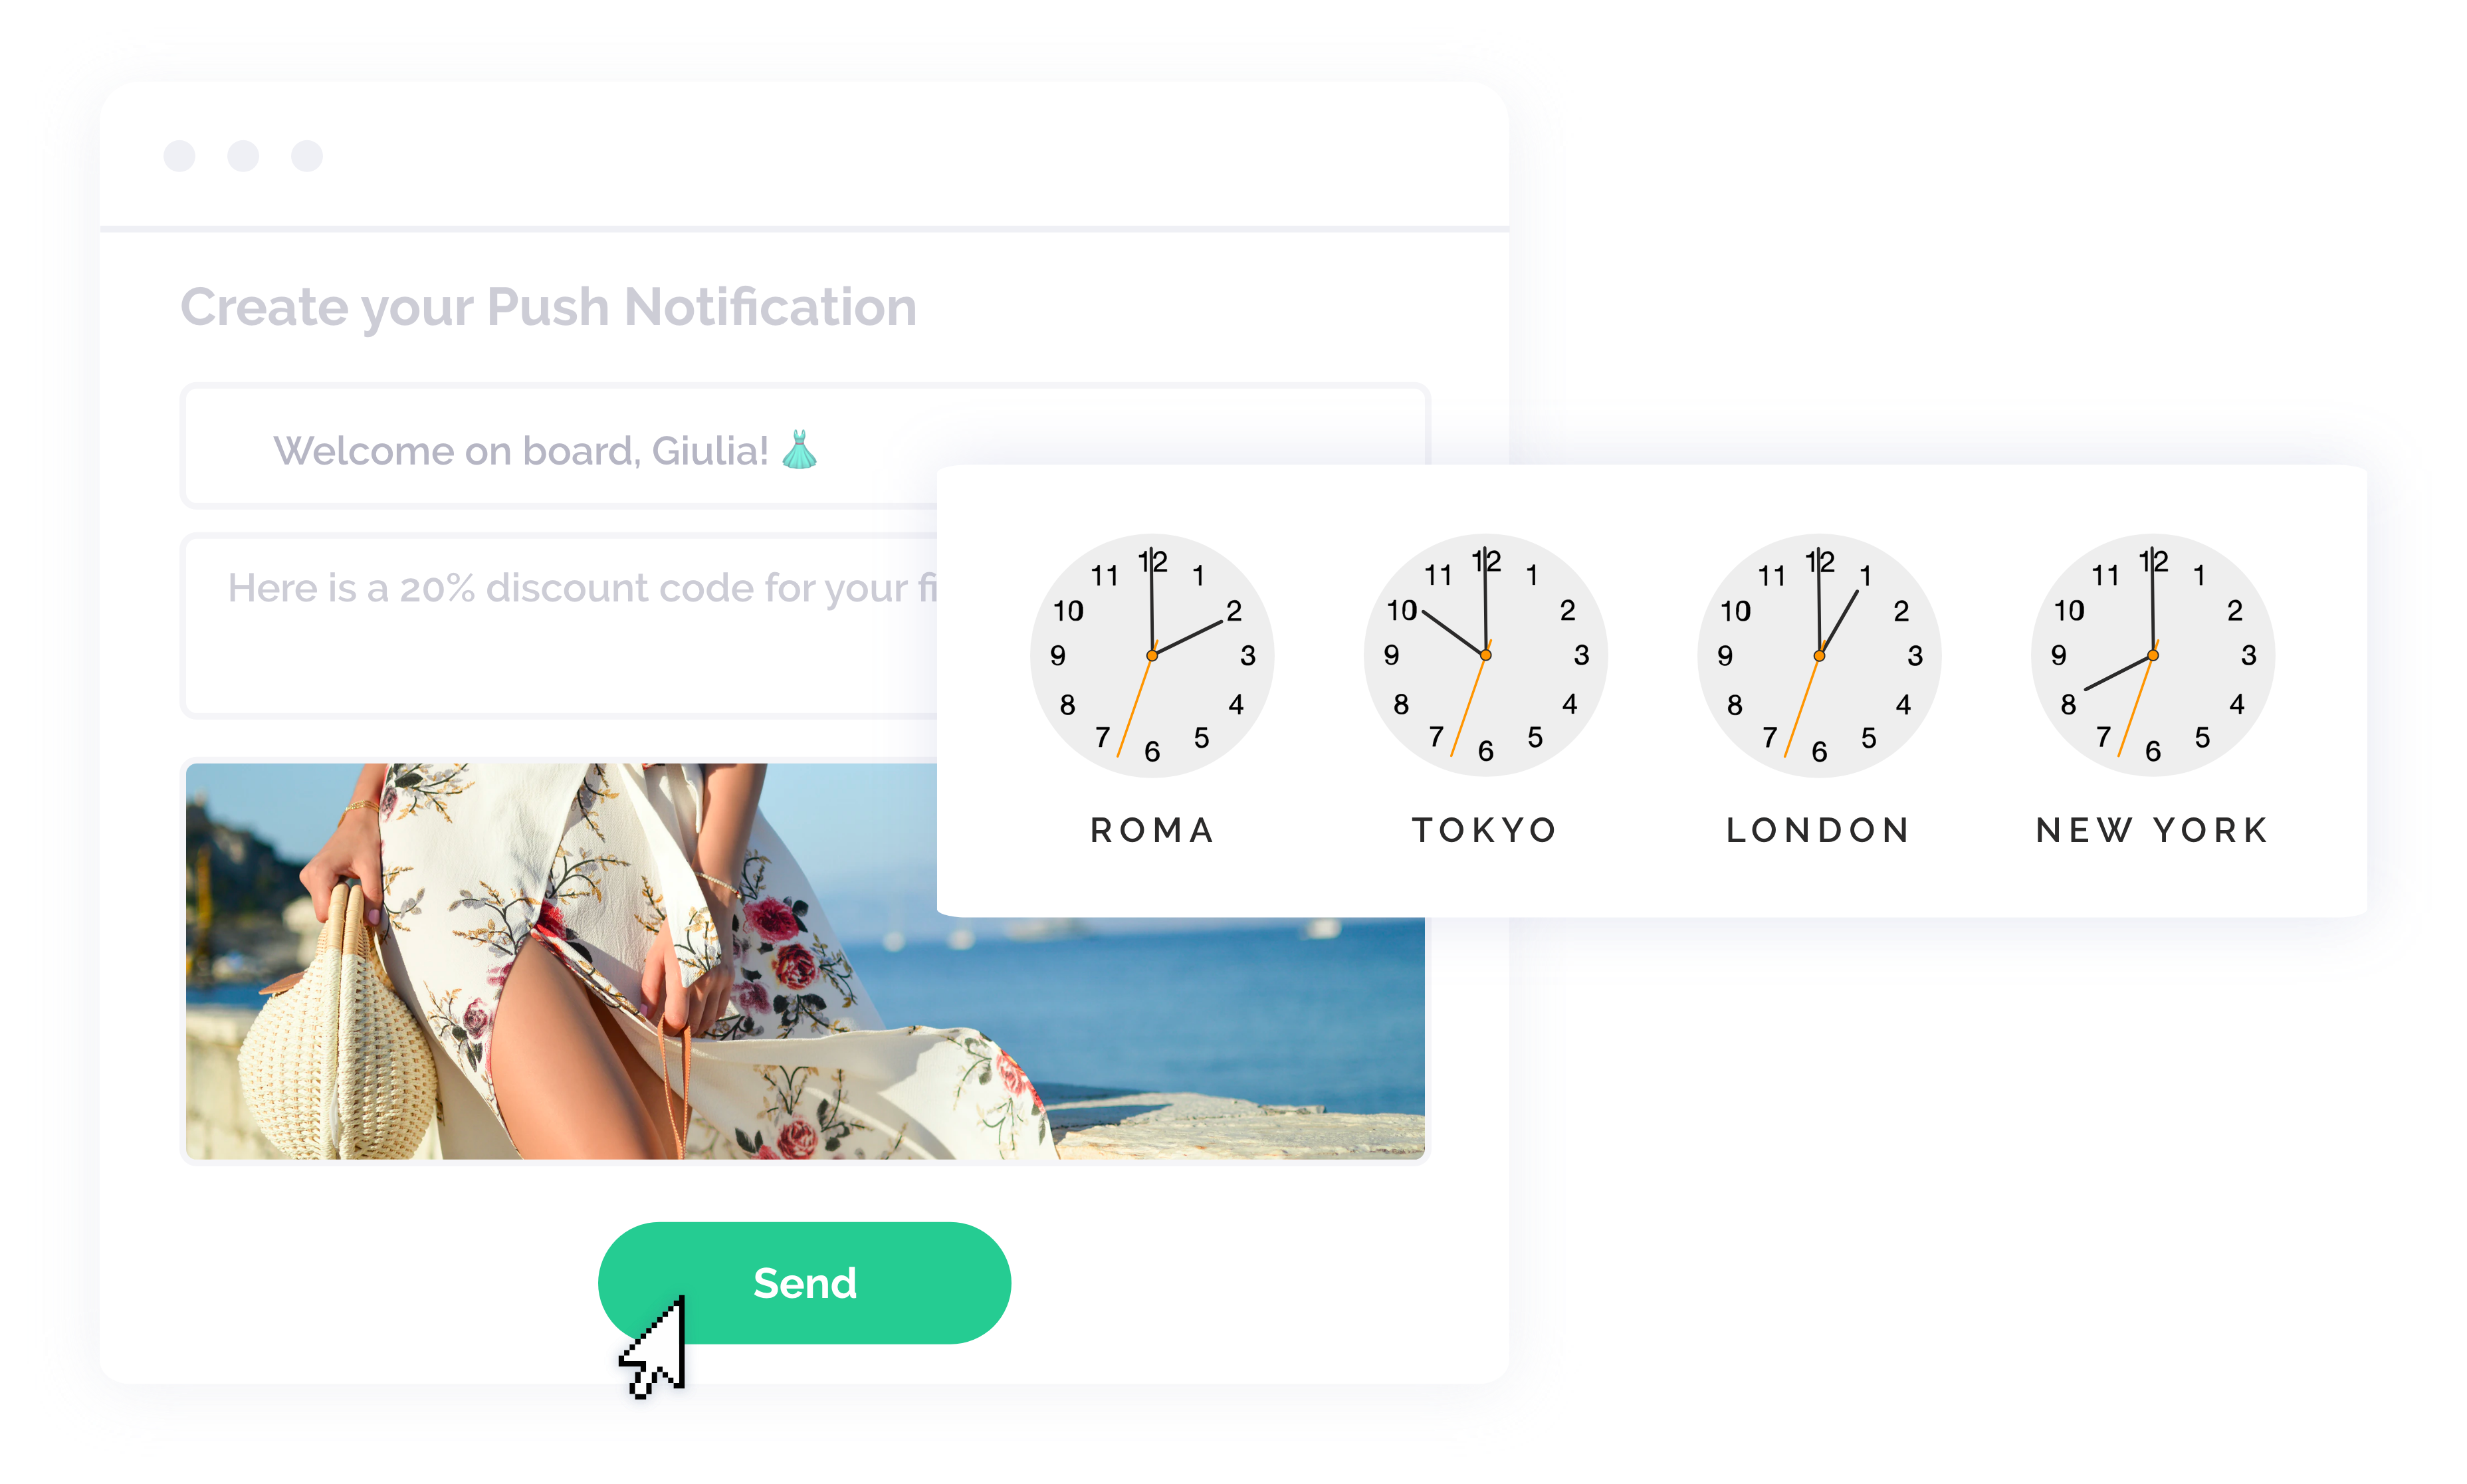 Scheduling push notifications